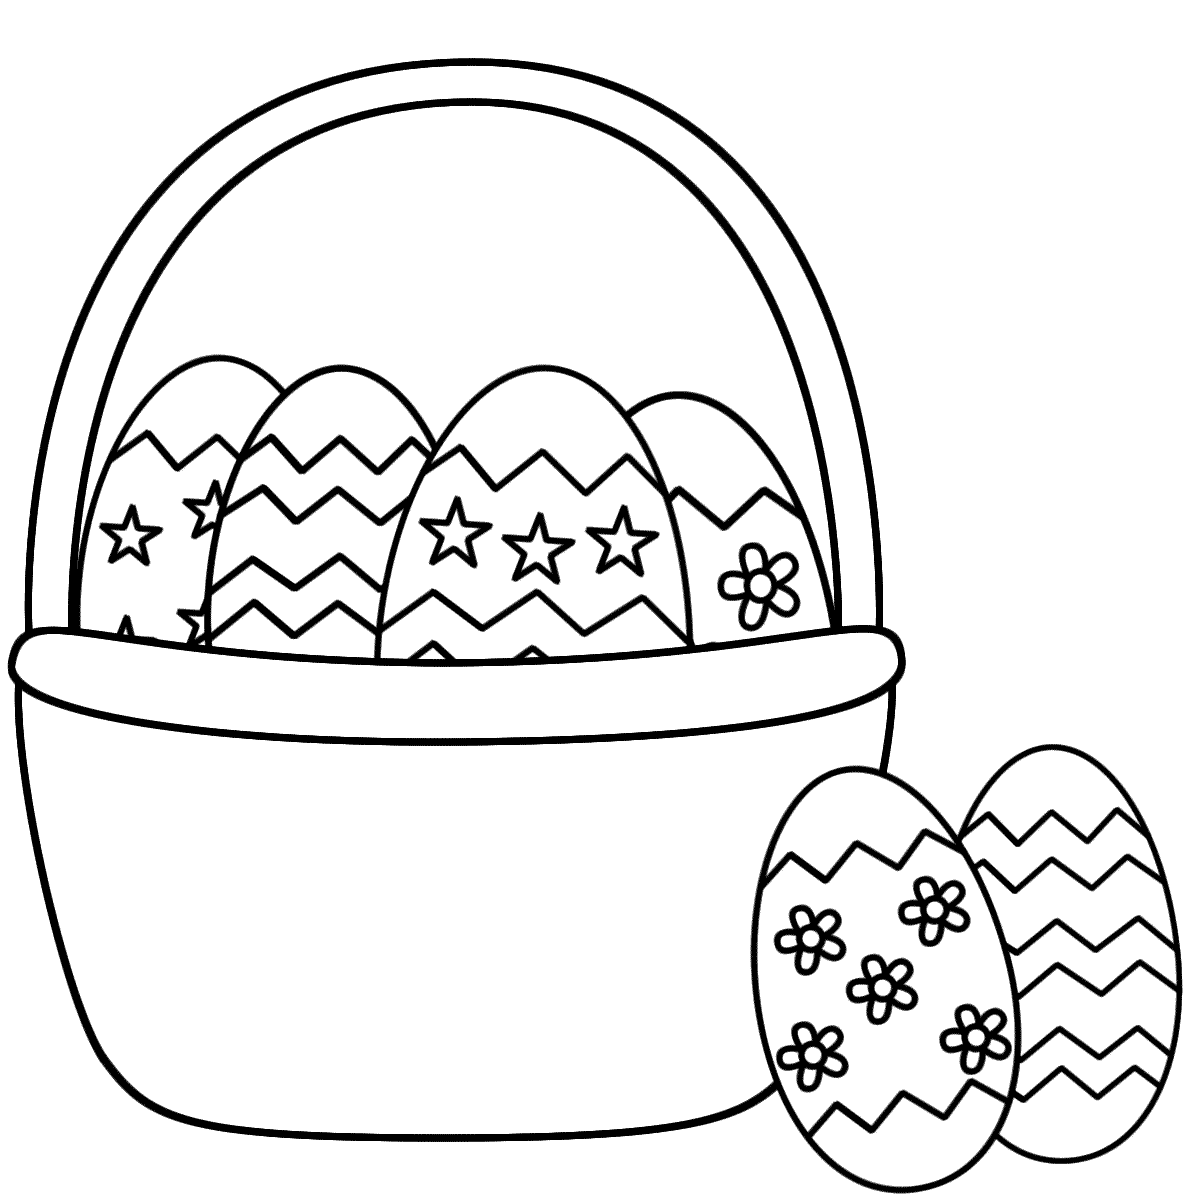 Easter Egg Drawing To Colour At Getdrawings